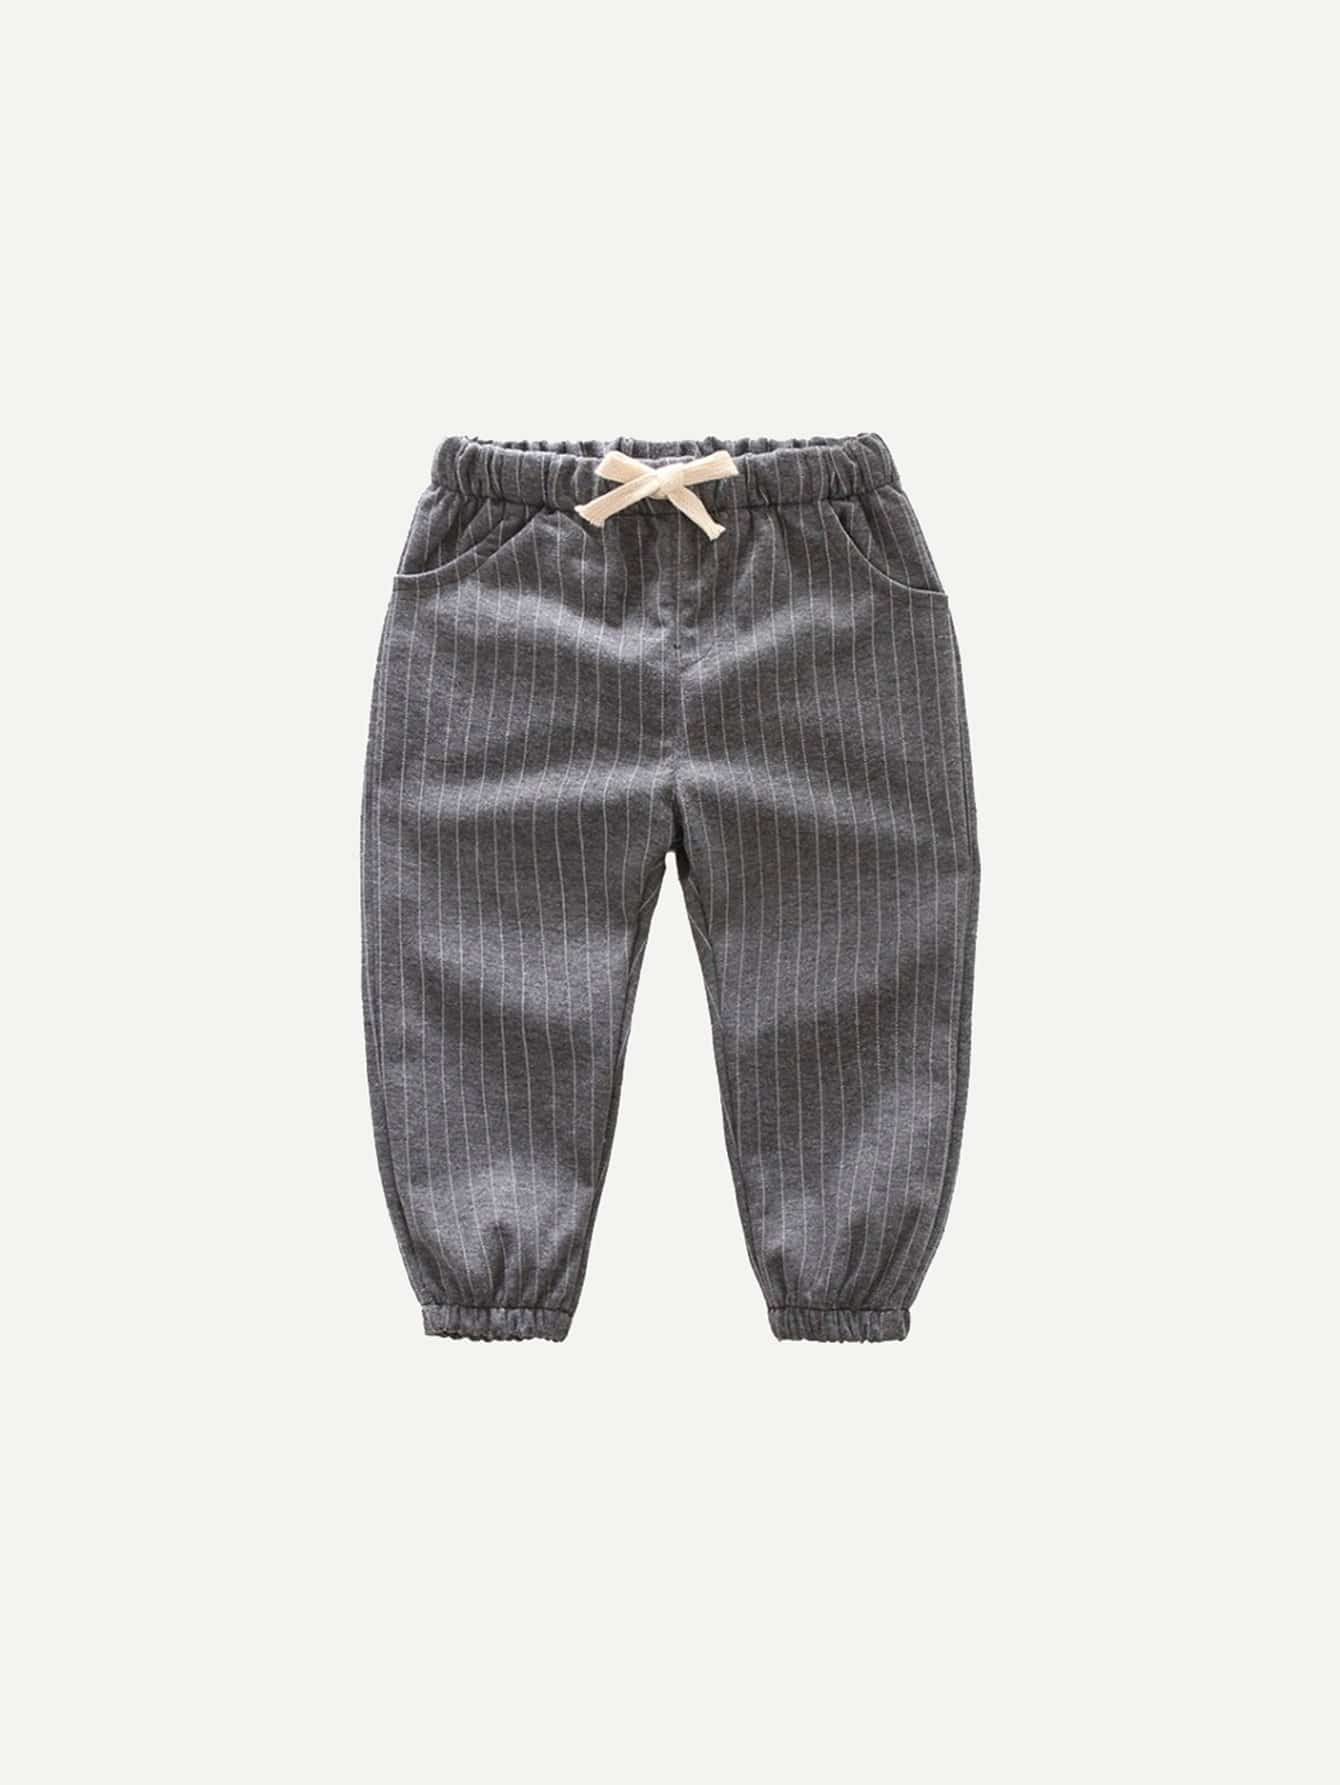 Boys Knot Front Striped Pants